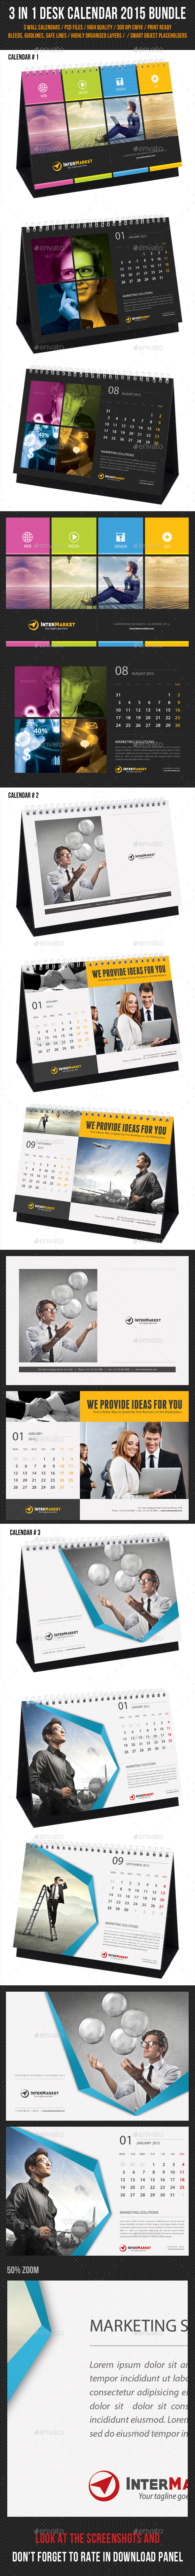 GraphicRiver 3 in 1 Corporate Desk Calendar 2015 Bundle 9721978